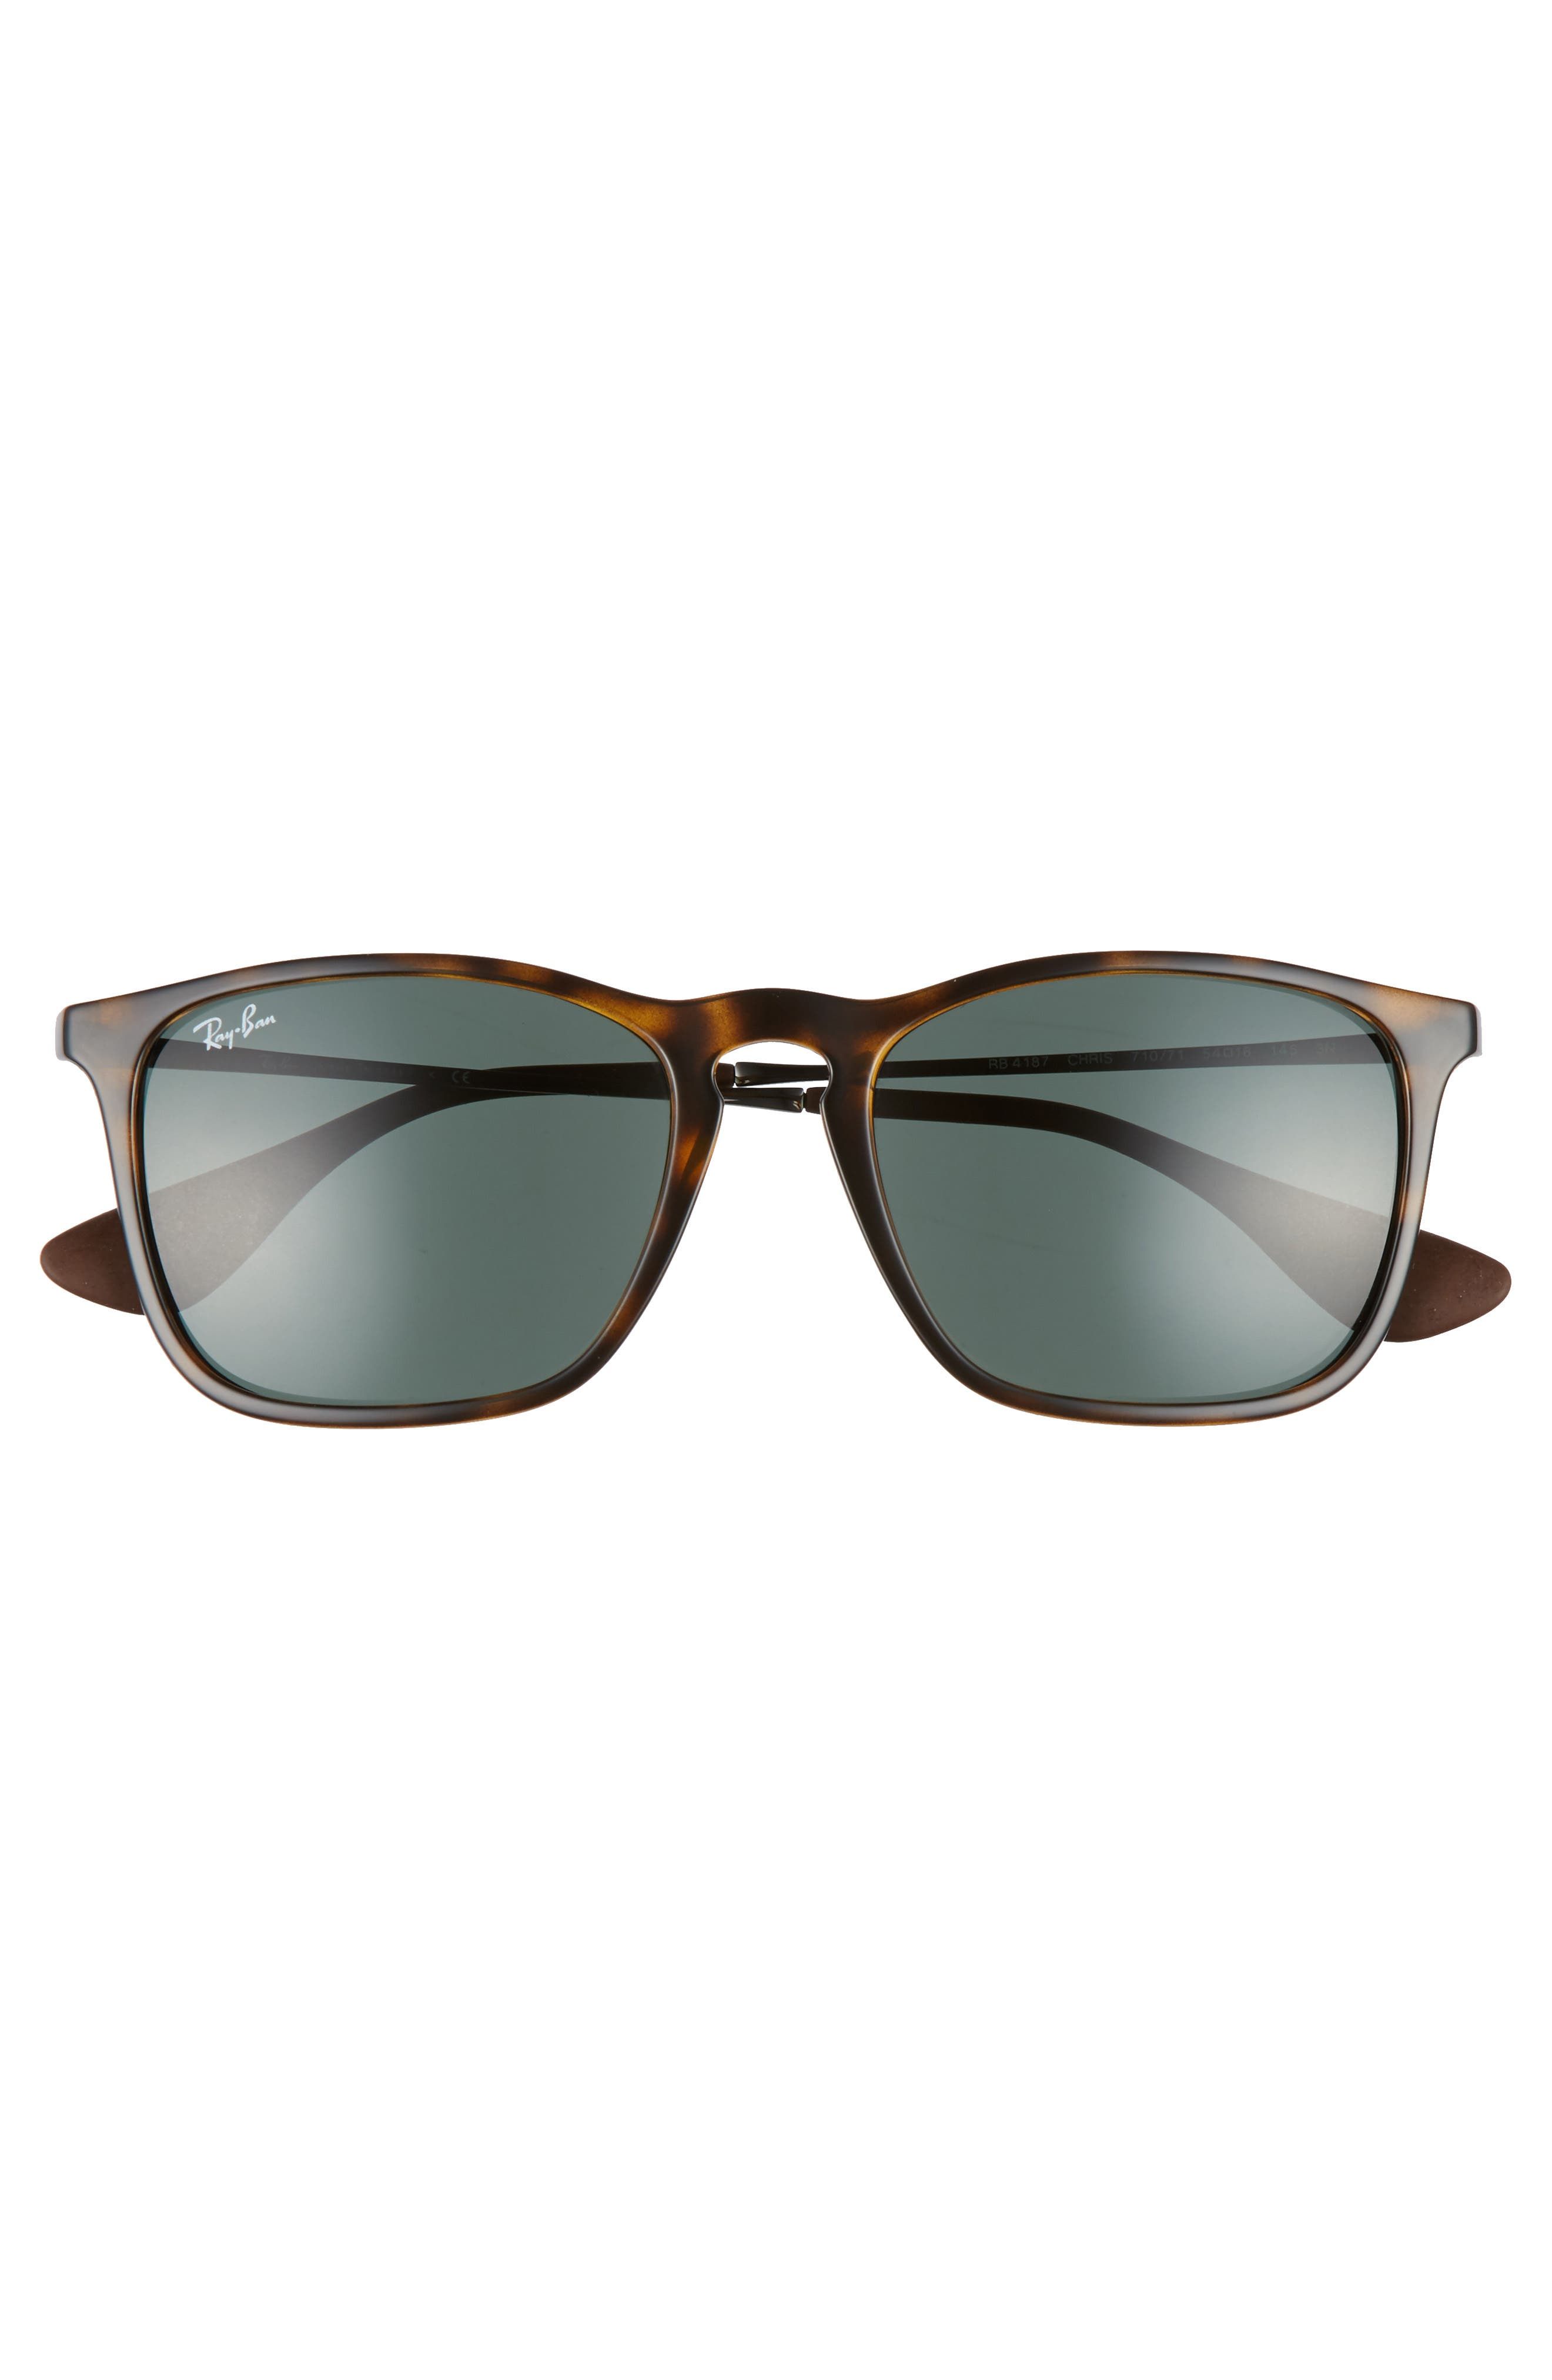 54mm Sunglasses,                             Alternate thumbnail 2, color,                             LIGHT HAVANA